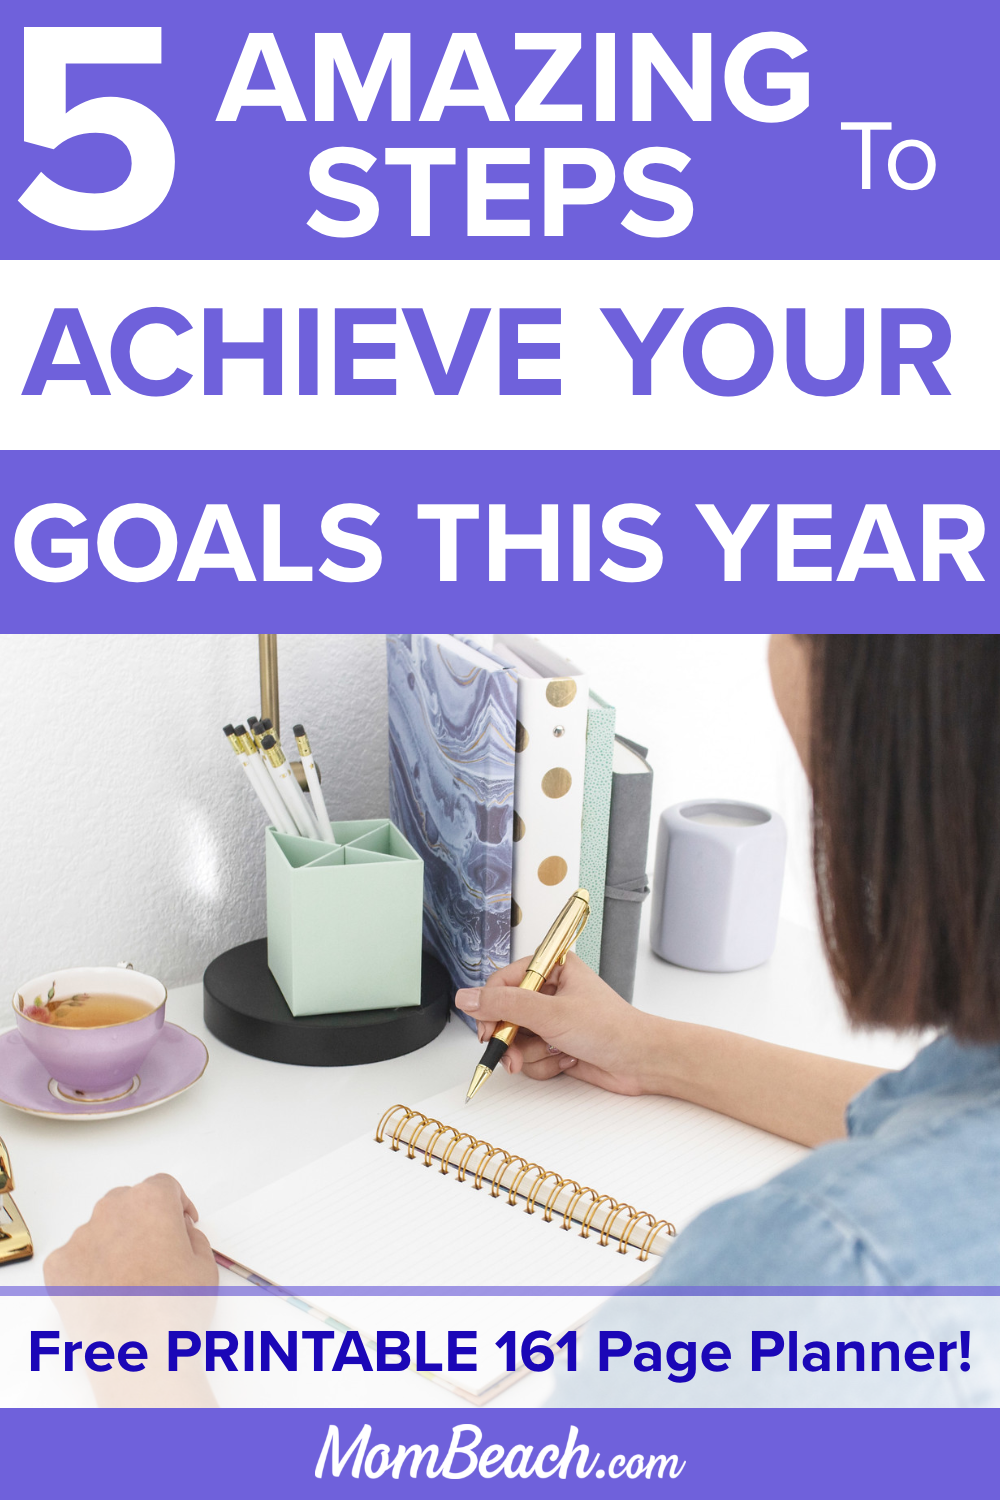 You won't believe how EASY it is to set goals for your life with these 5 hacks. You can achieve goals in your personal life so you can have a blessed future. Students, business owners, kids and more can benefit from goal setting to plan your future. Use these printable planner included to aid in your goal setting. #goalsetting #businessgoalsetting #personalgoalsetting #goalsettinghacks #goalsettingsteps #easygoalsetting #lifegoals #personalgoals #goals #howtoachievegoals #stepstoachievegoals